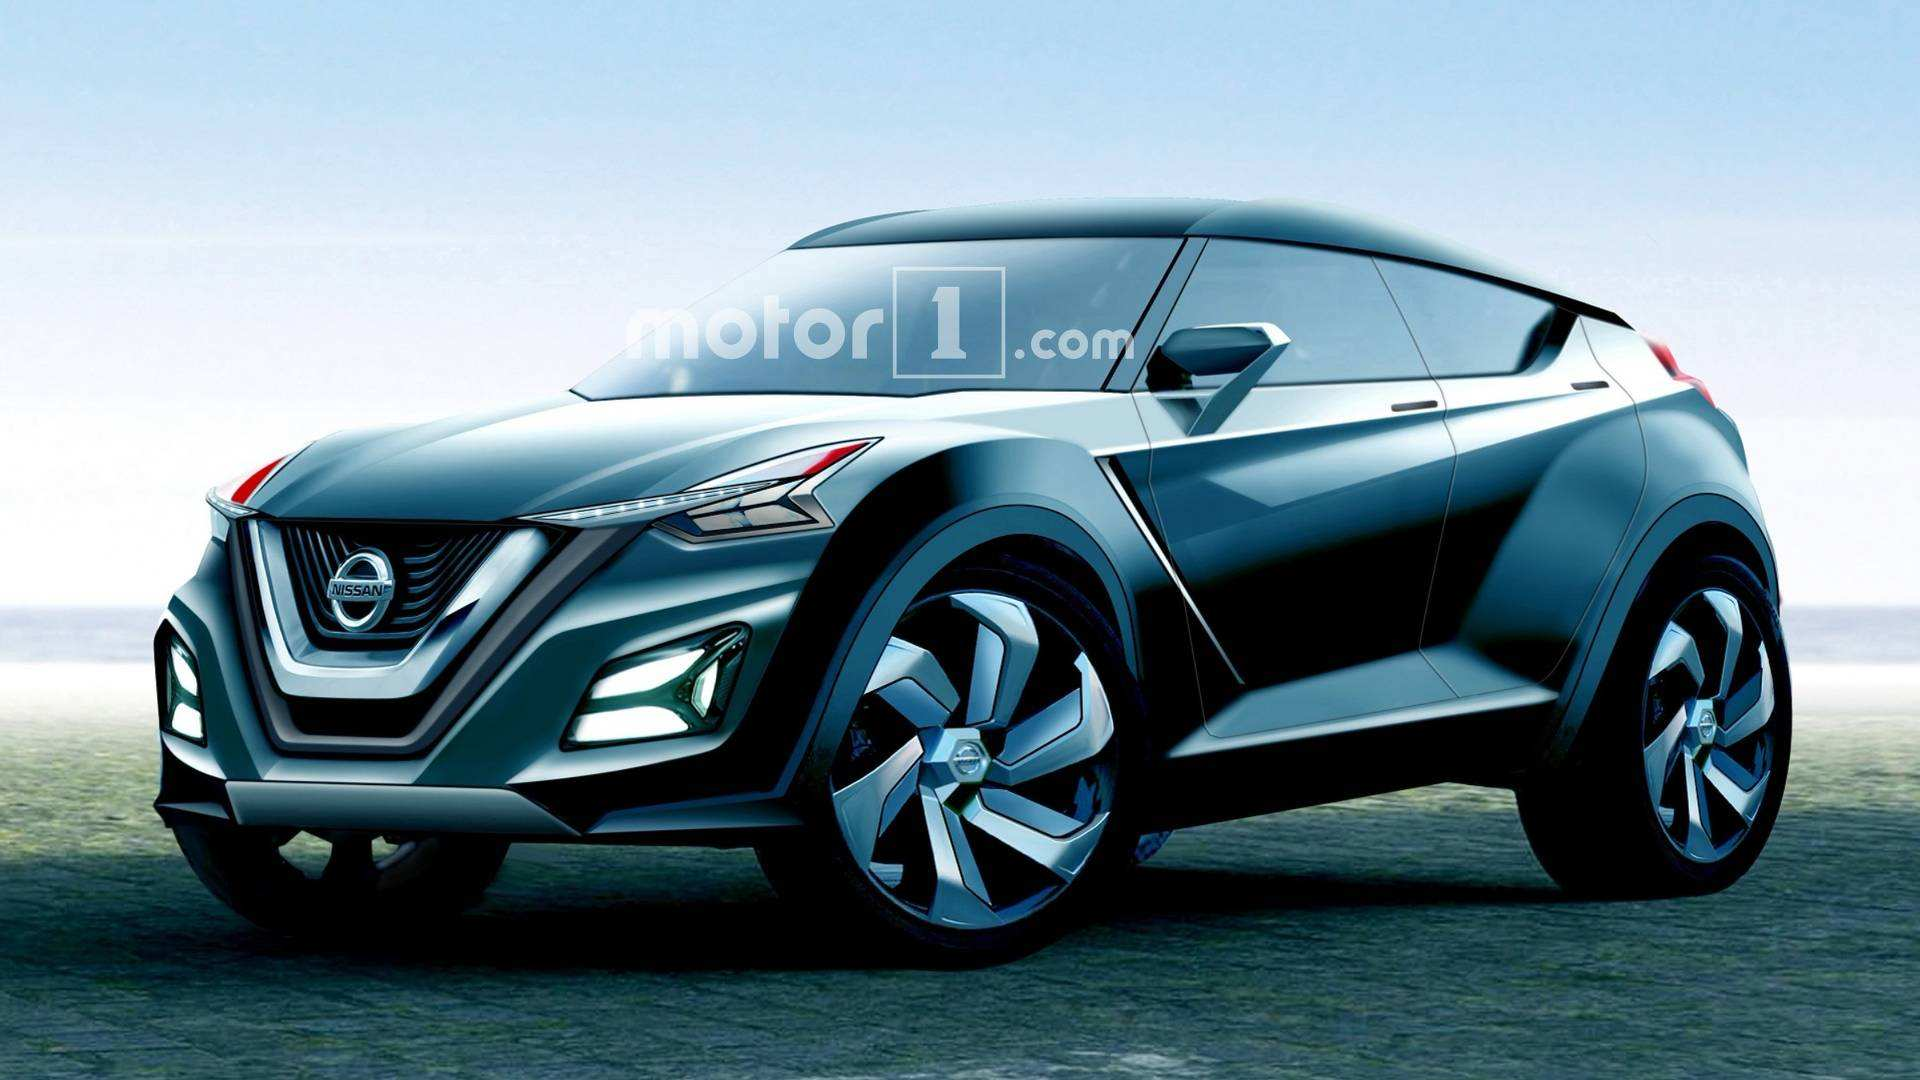 74 All New Nissan Juke 2019 Release Date Engine